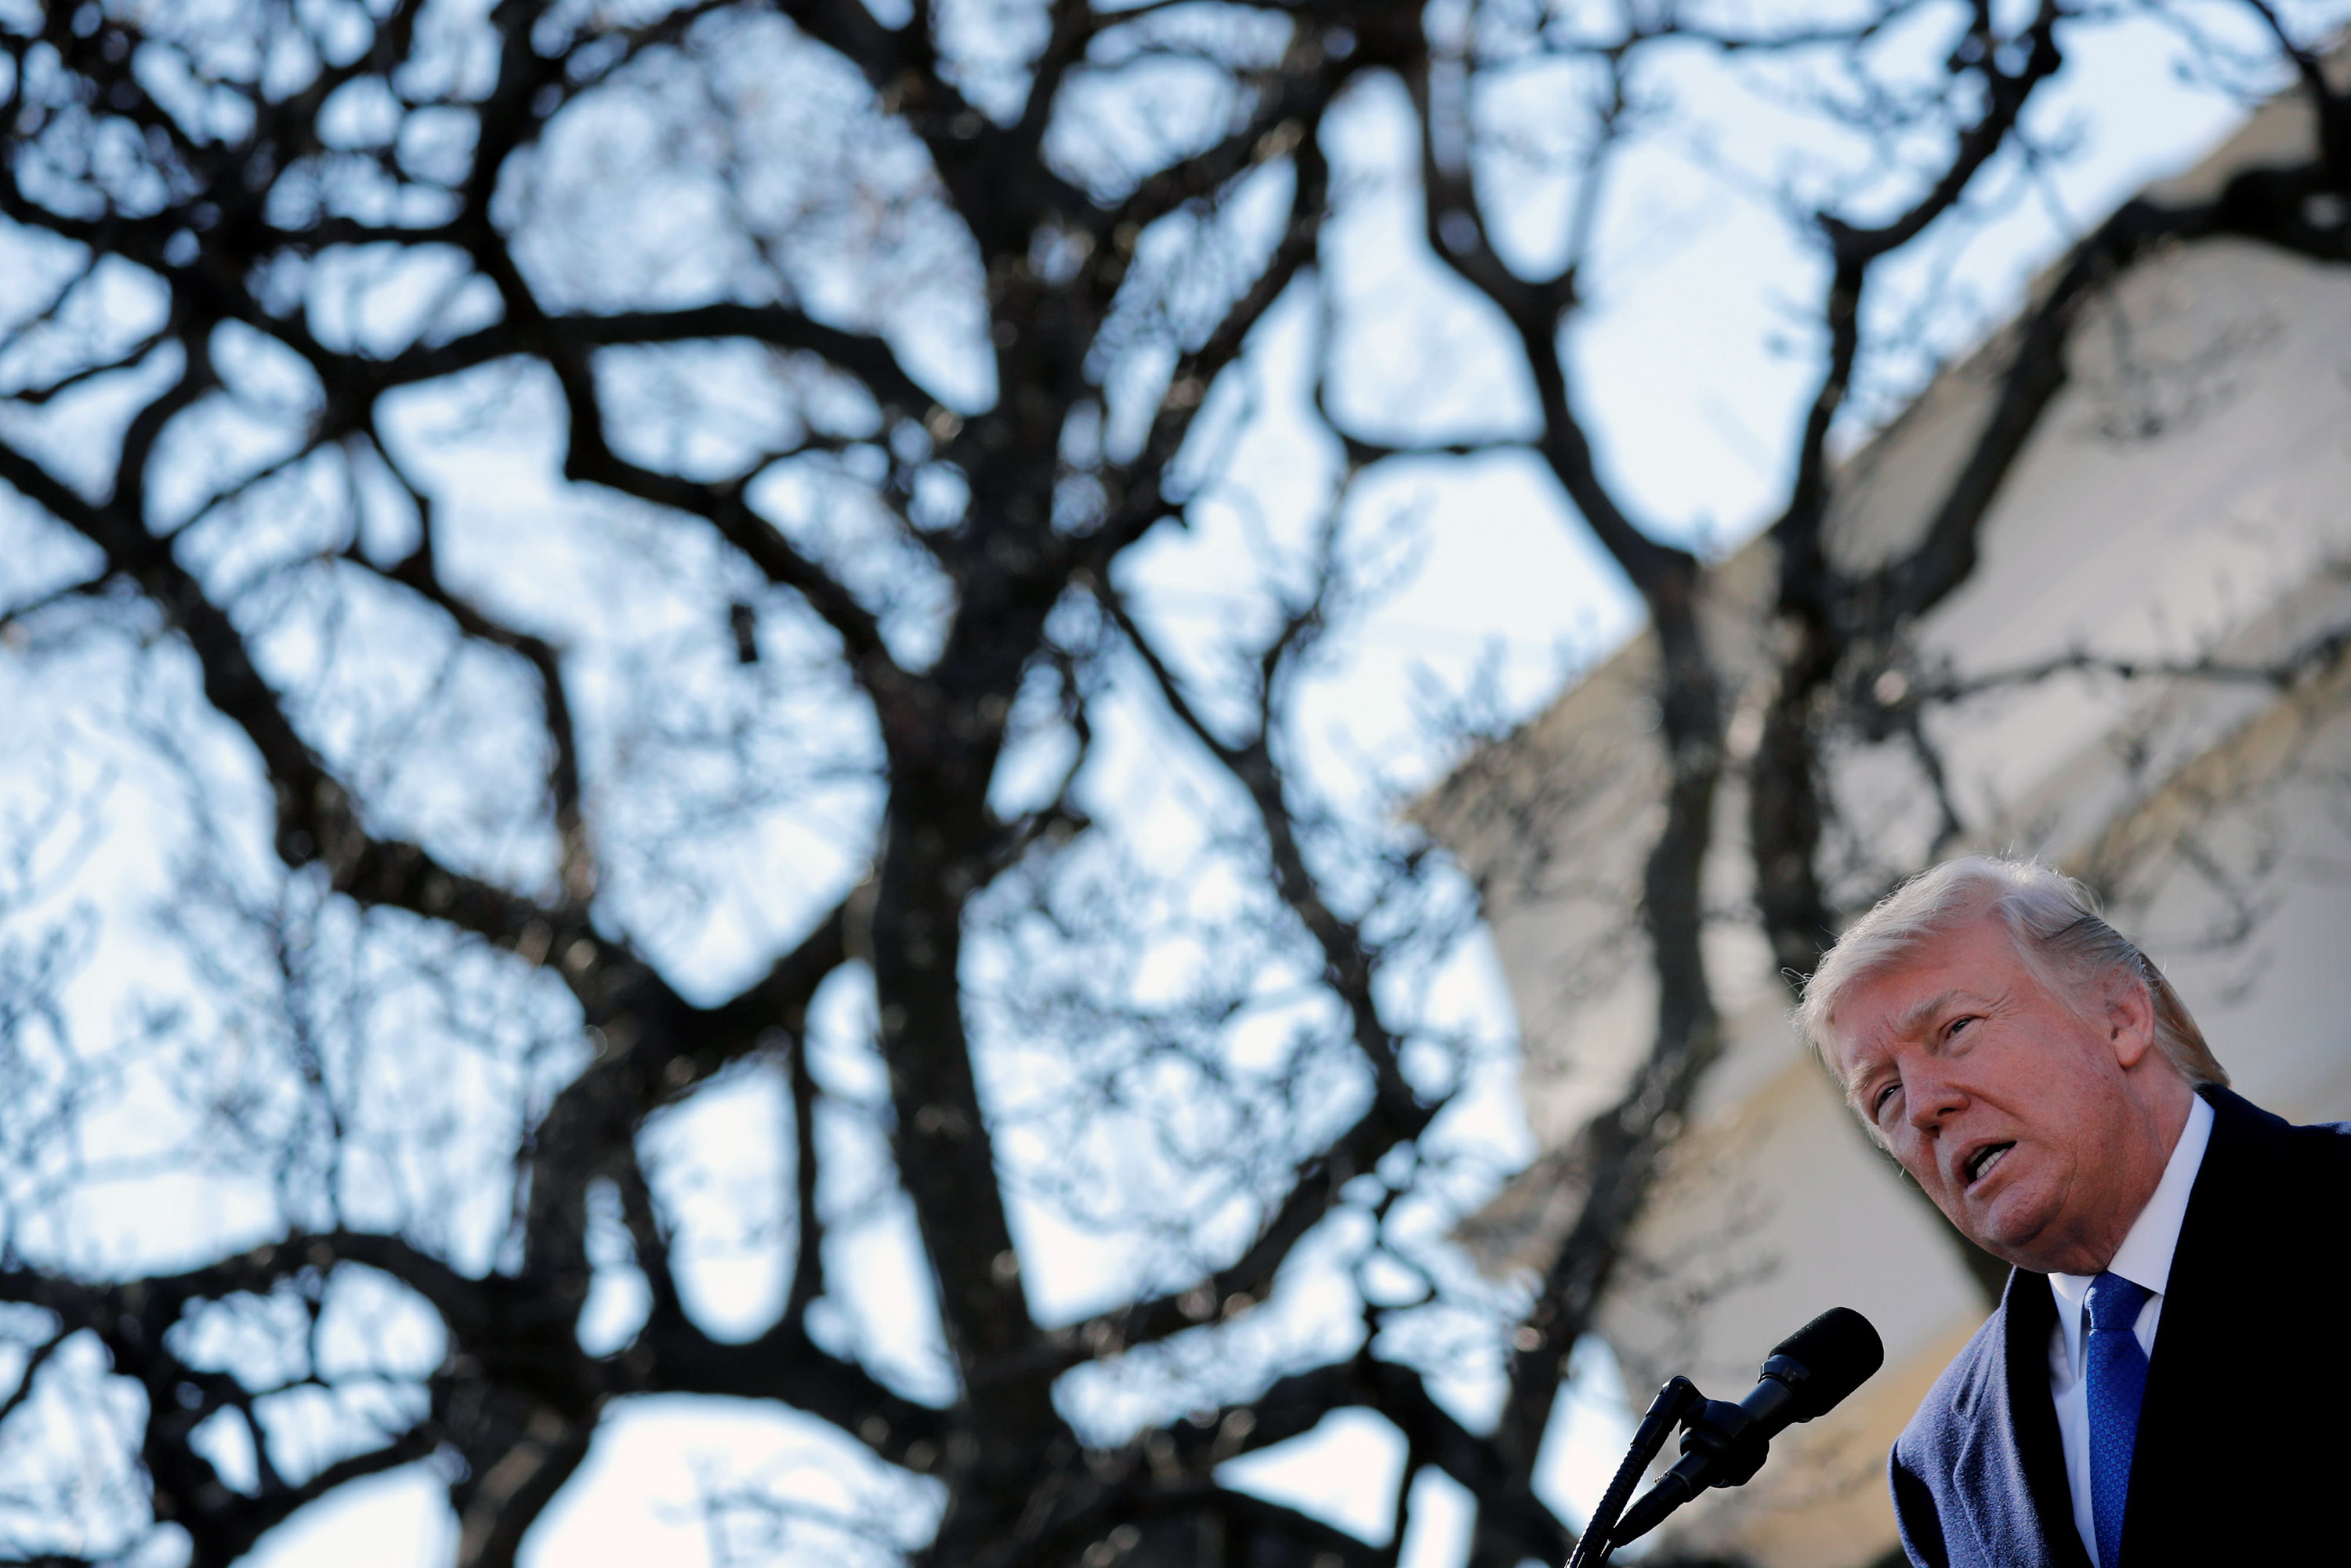 U.S. President Donald Trump addresses the annual March for Life rally, taking place on the National Mall, from the White House Rose Garden in Washington